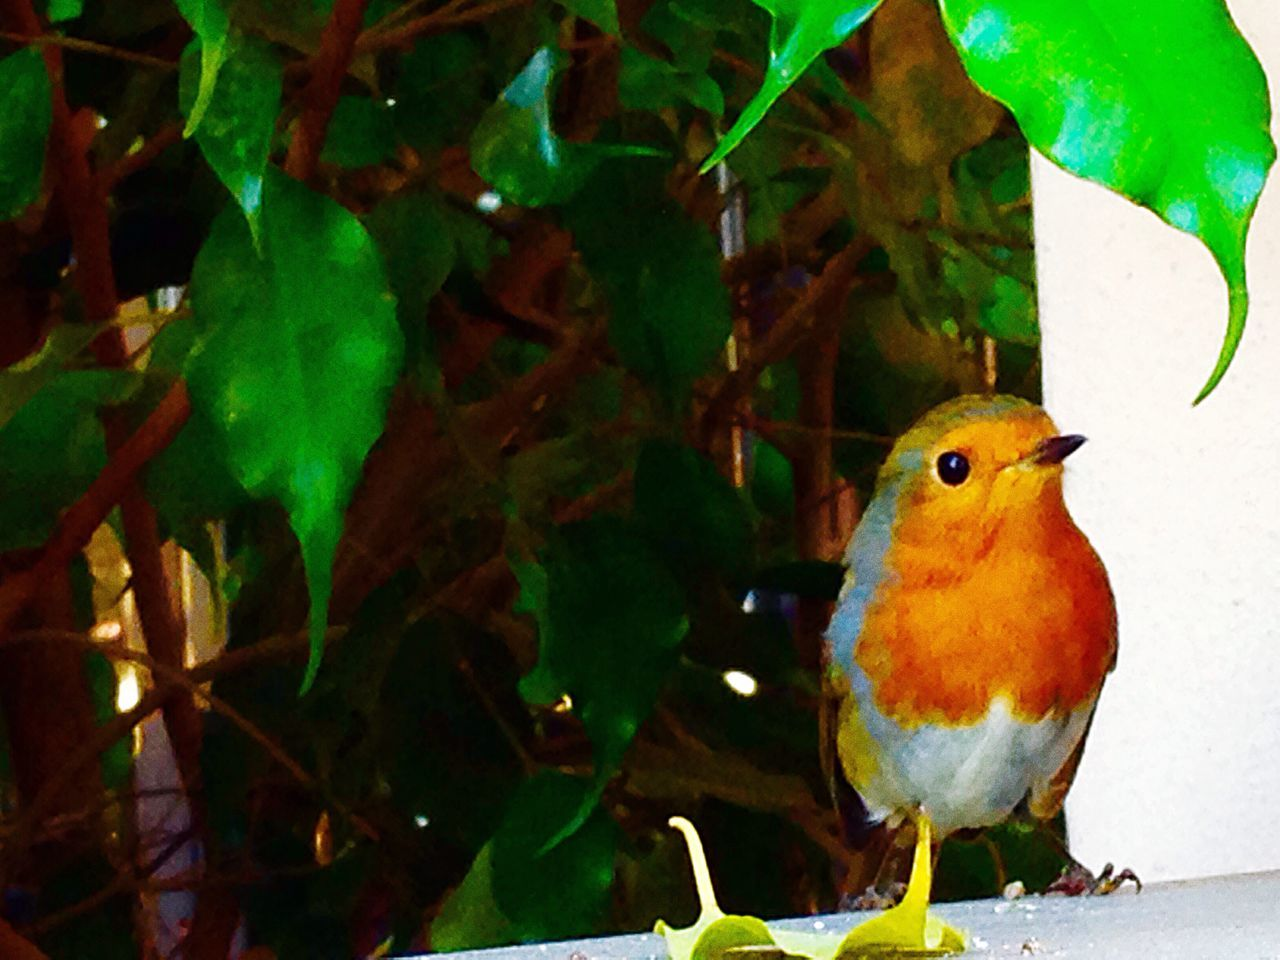 Redbreast 🐦 🔴 🐦 Nature Nature Photography Nature_collection Birds Little Redbreast Myhome Enjoying Life Hello World Taking Photos Cheese!